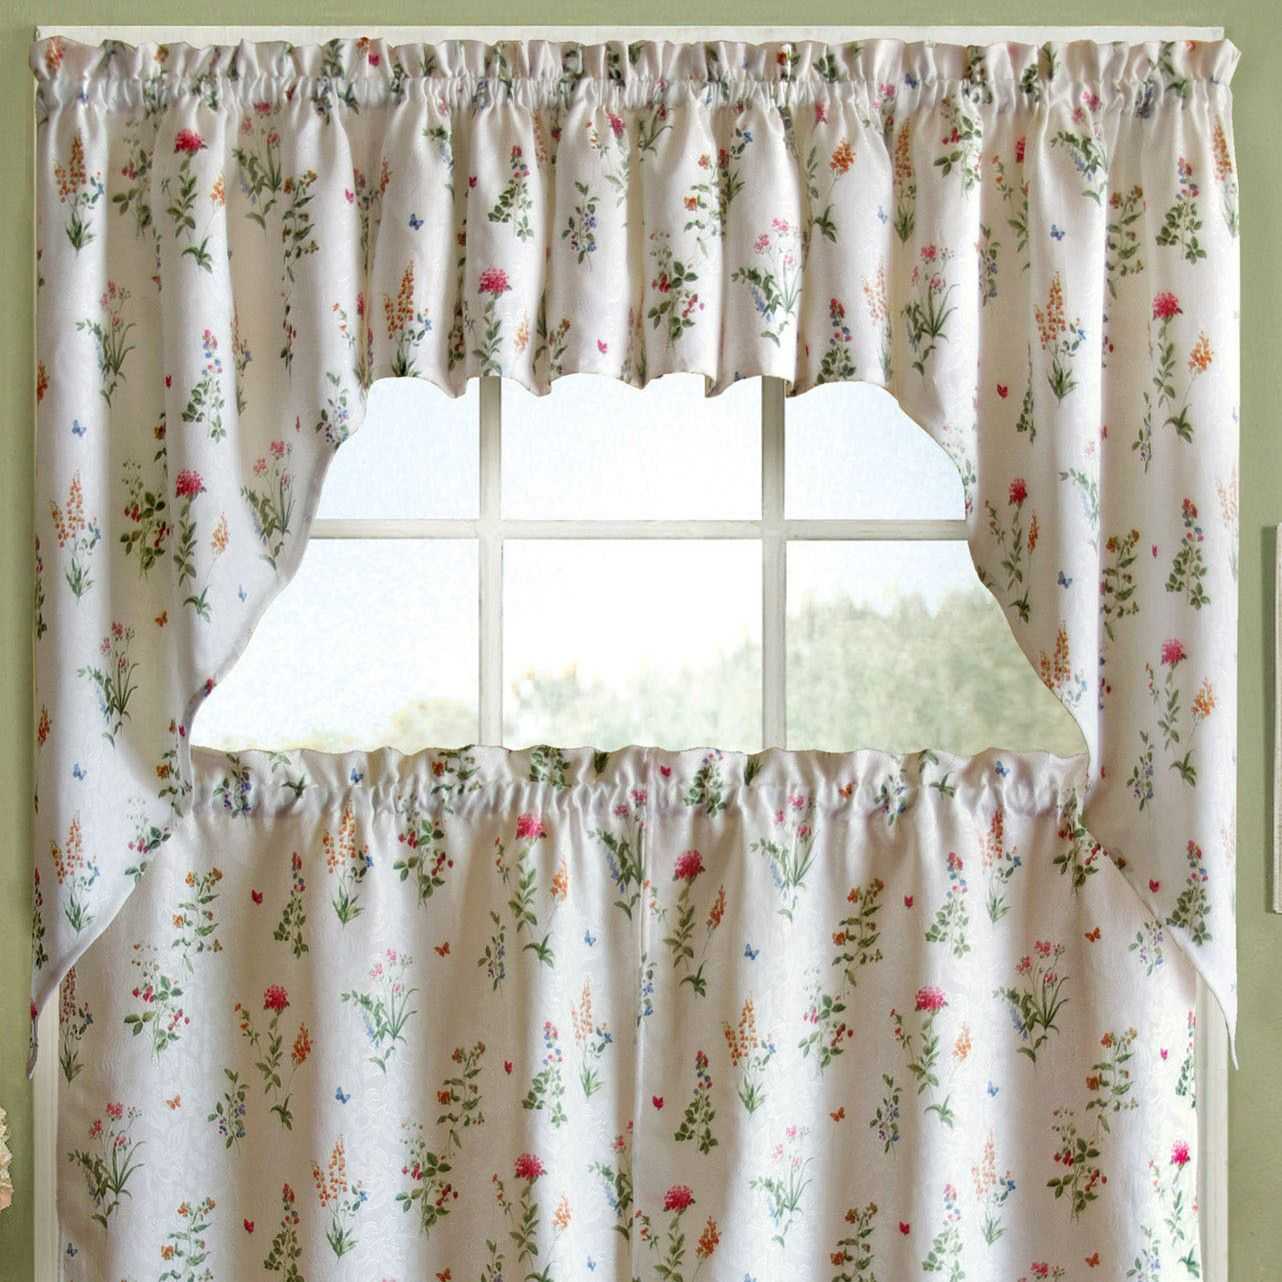 Sweet home collection english garden floral jacquard kitchen curtain valance reviews wayfair